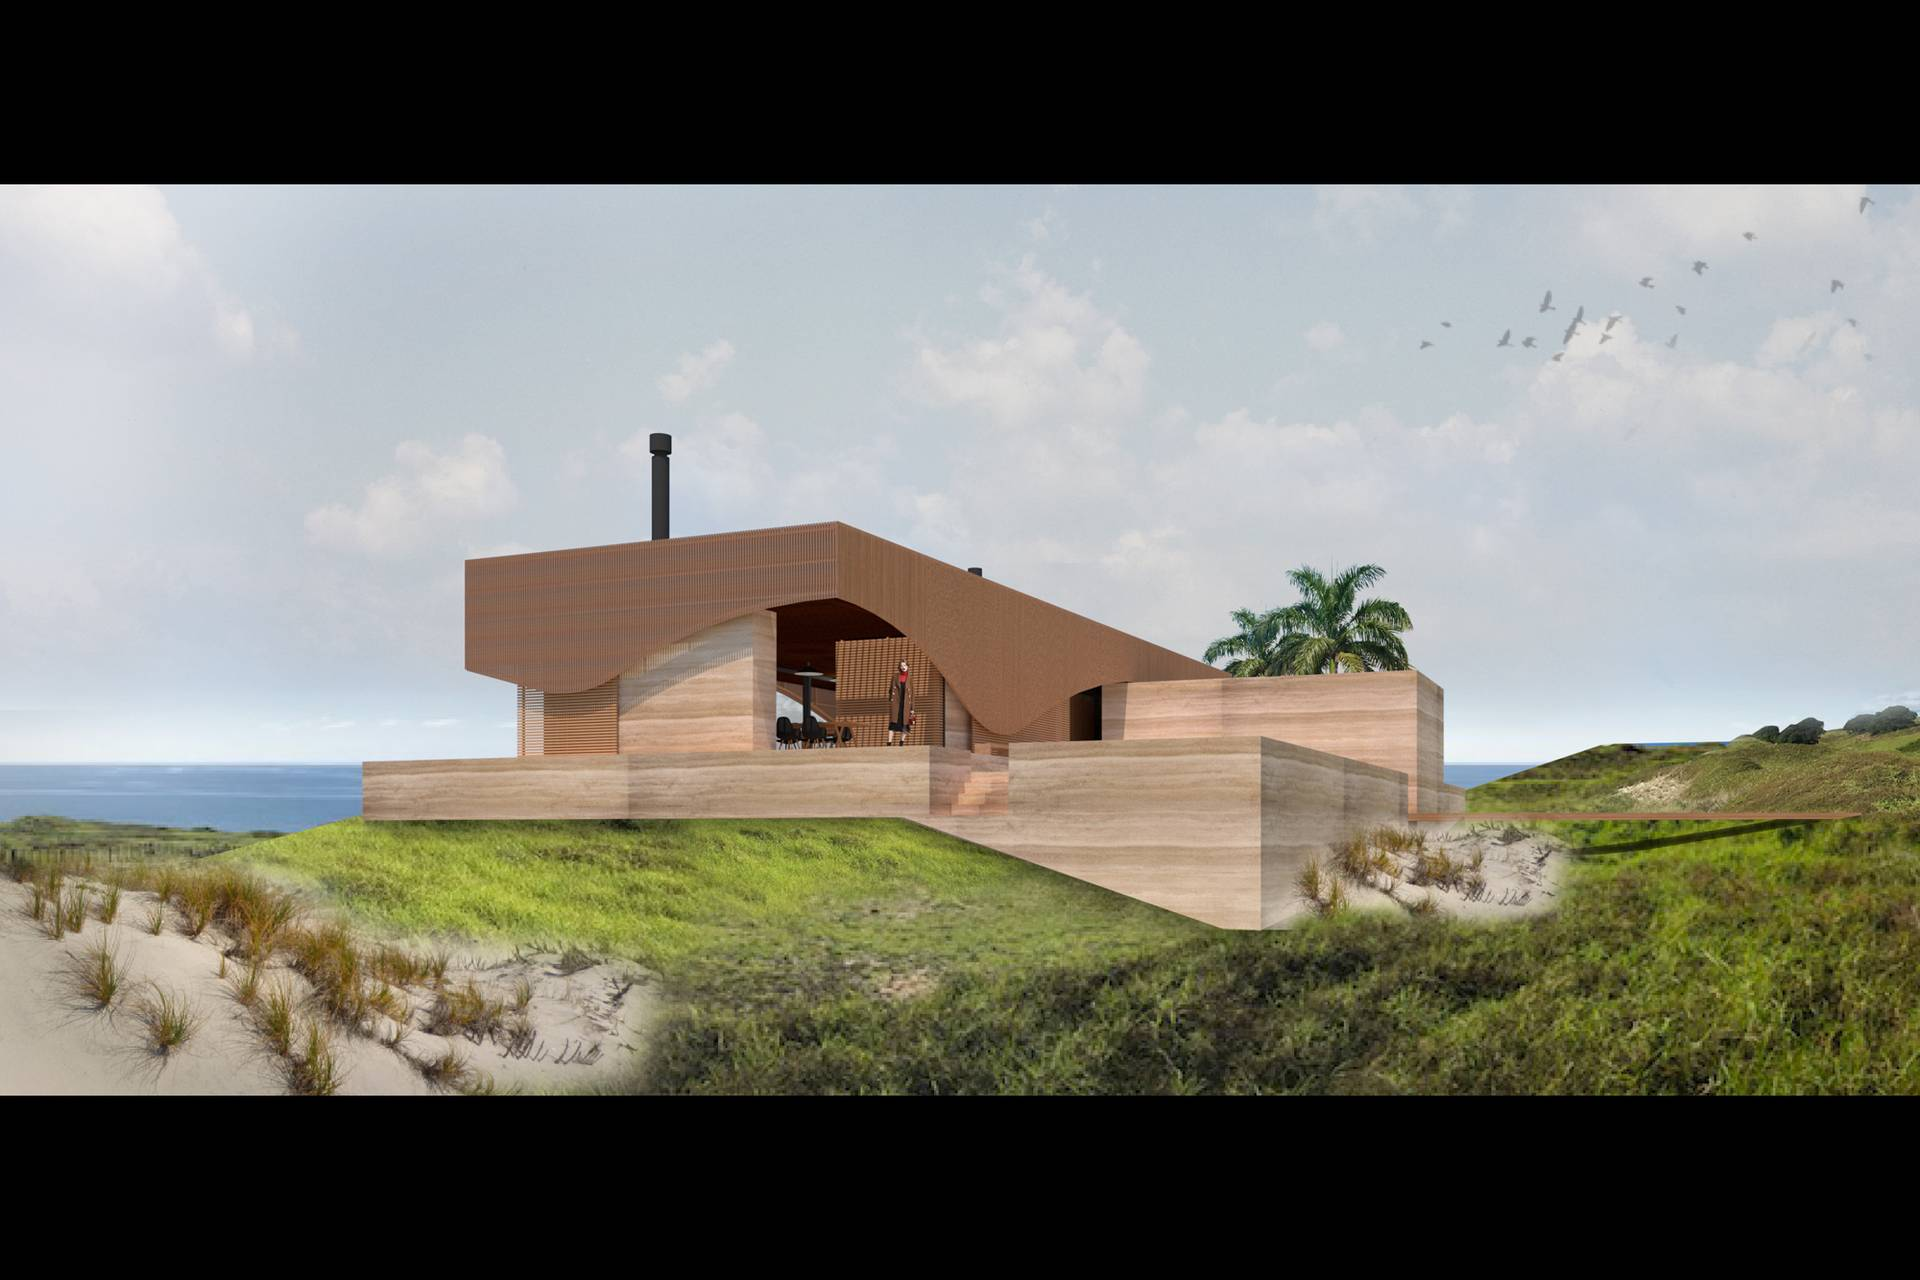 Dune House by Herbst Architects